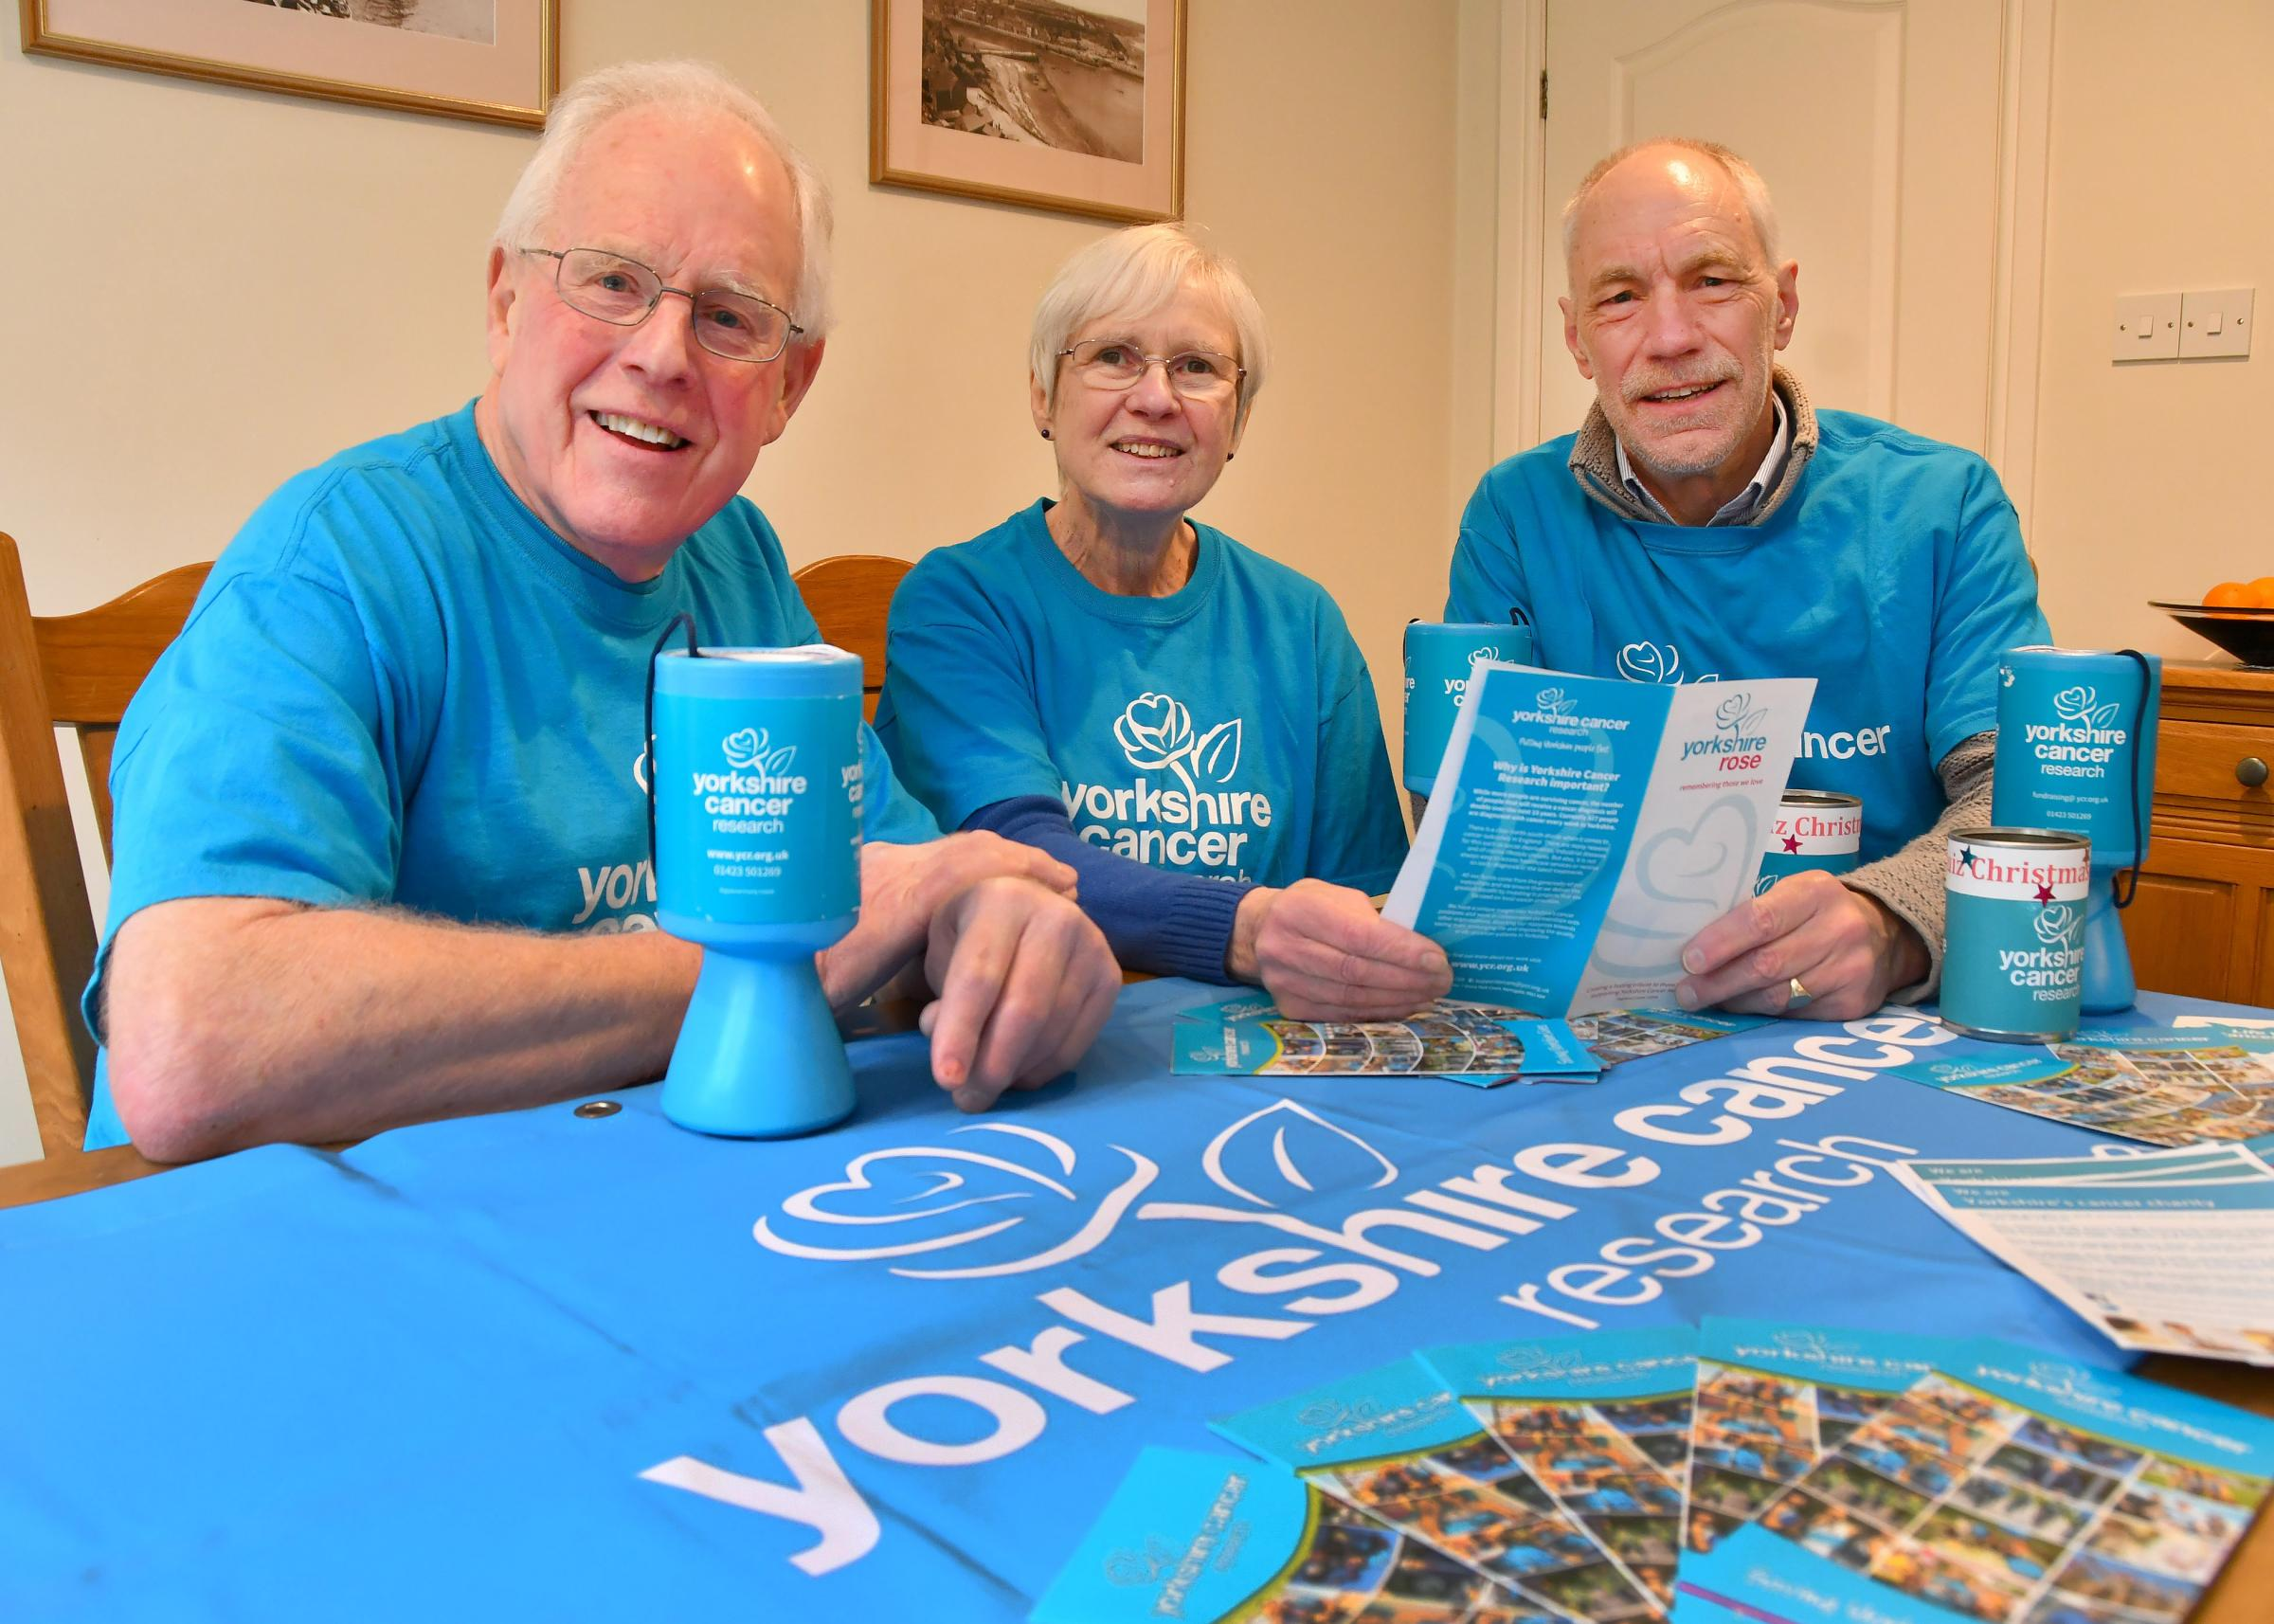 Members of the Pickering branch of Yorkshire Cancer Research Barry Howard, Val Chadwick and Chris Thompson